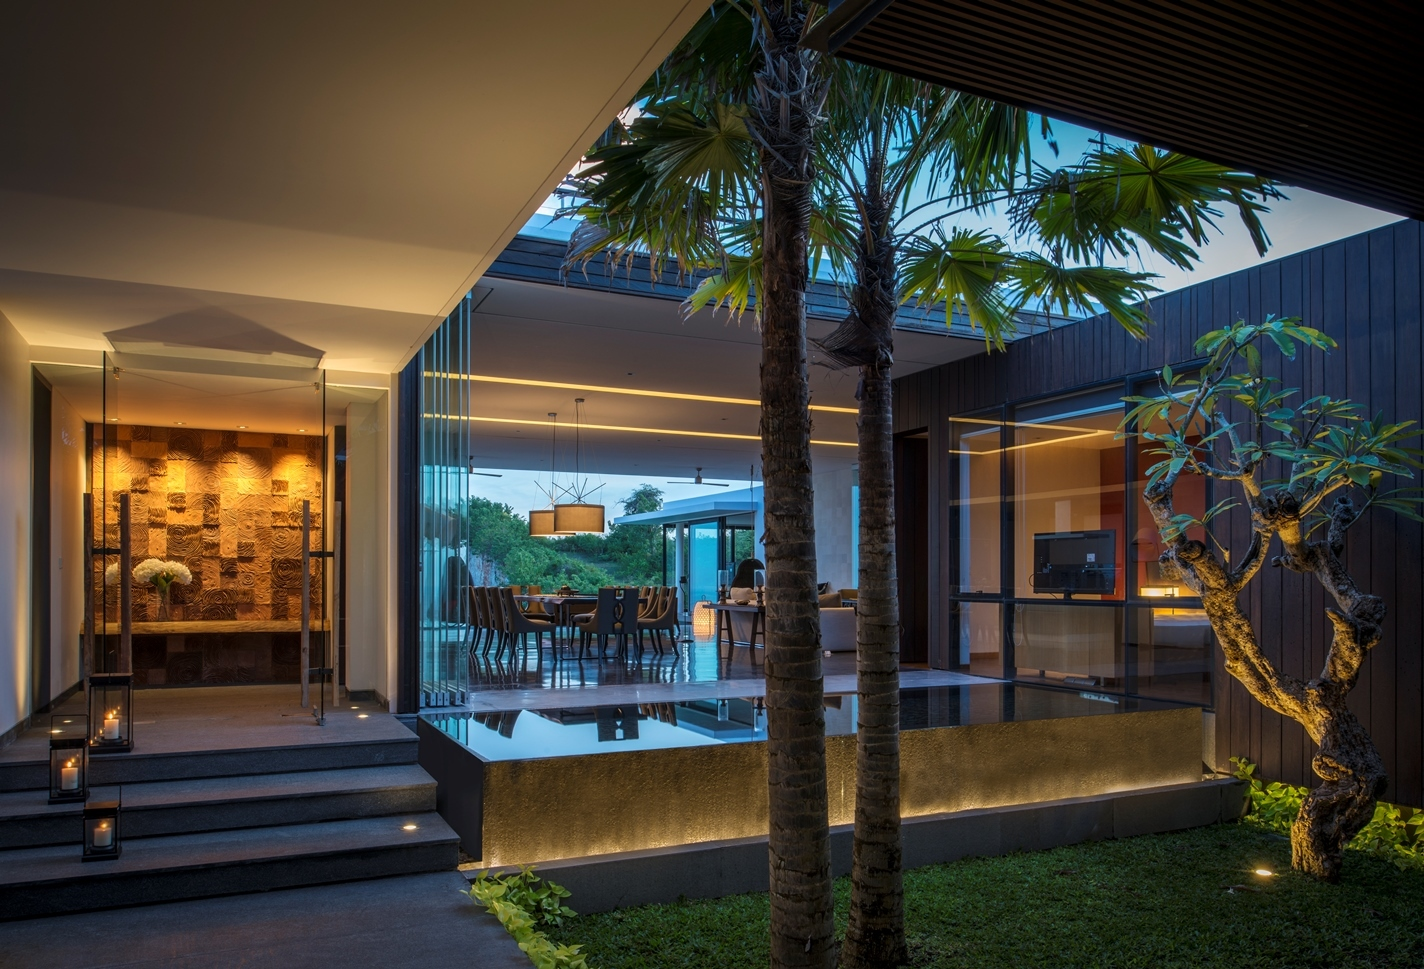 Modern resort villa with balinese theme idesignarch for Bali home inspirational design ideas